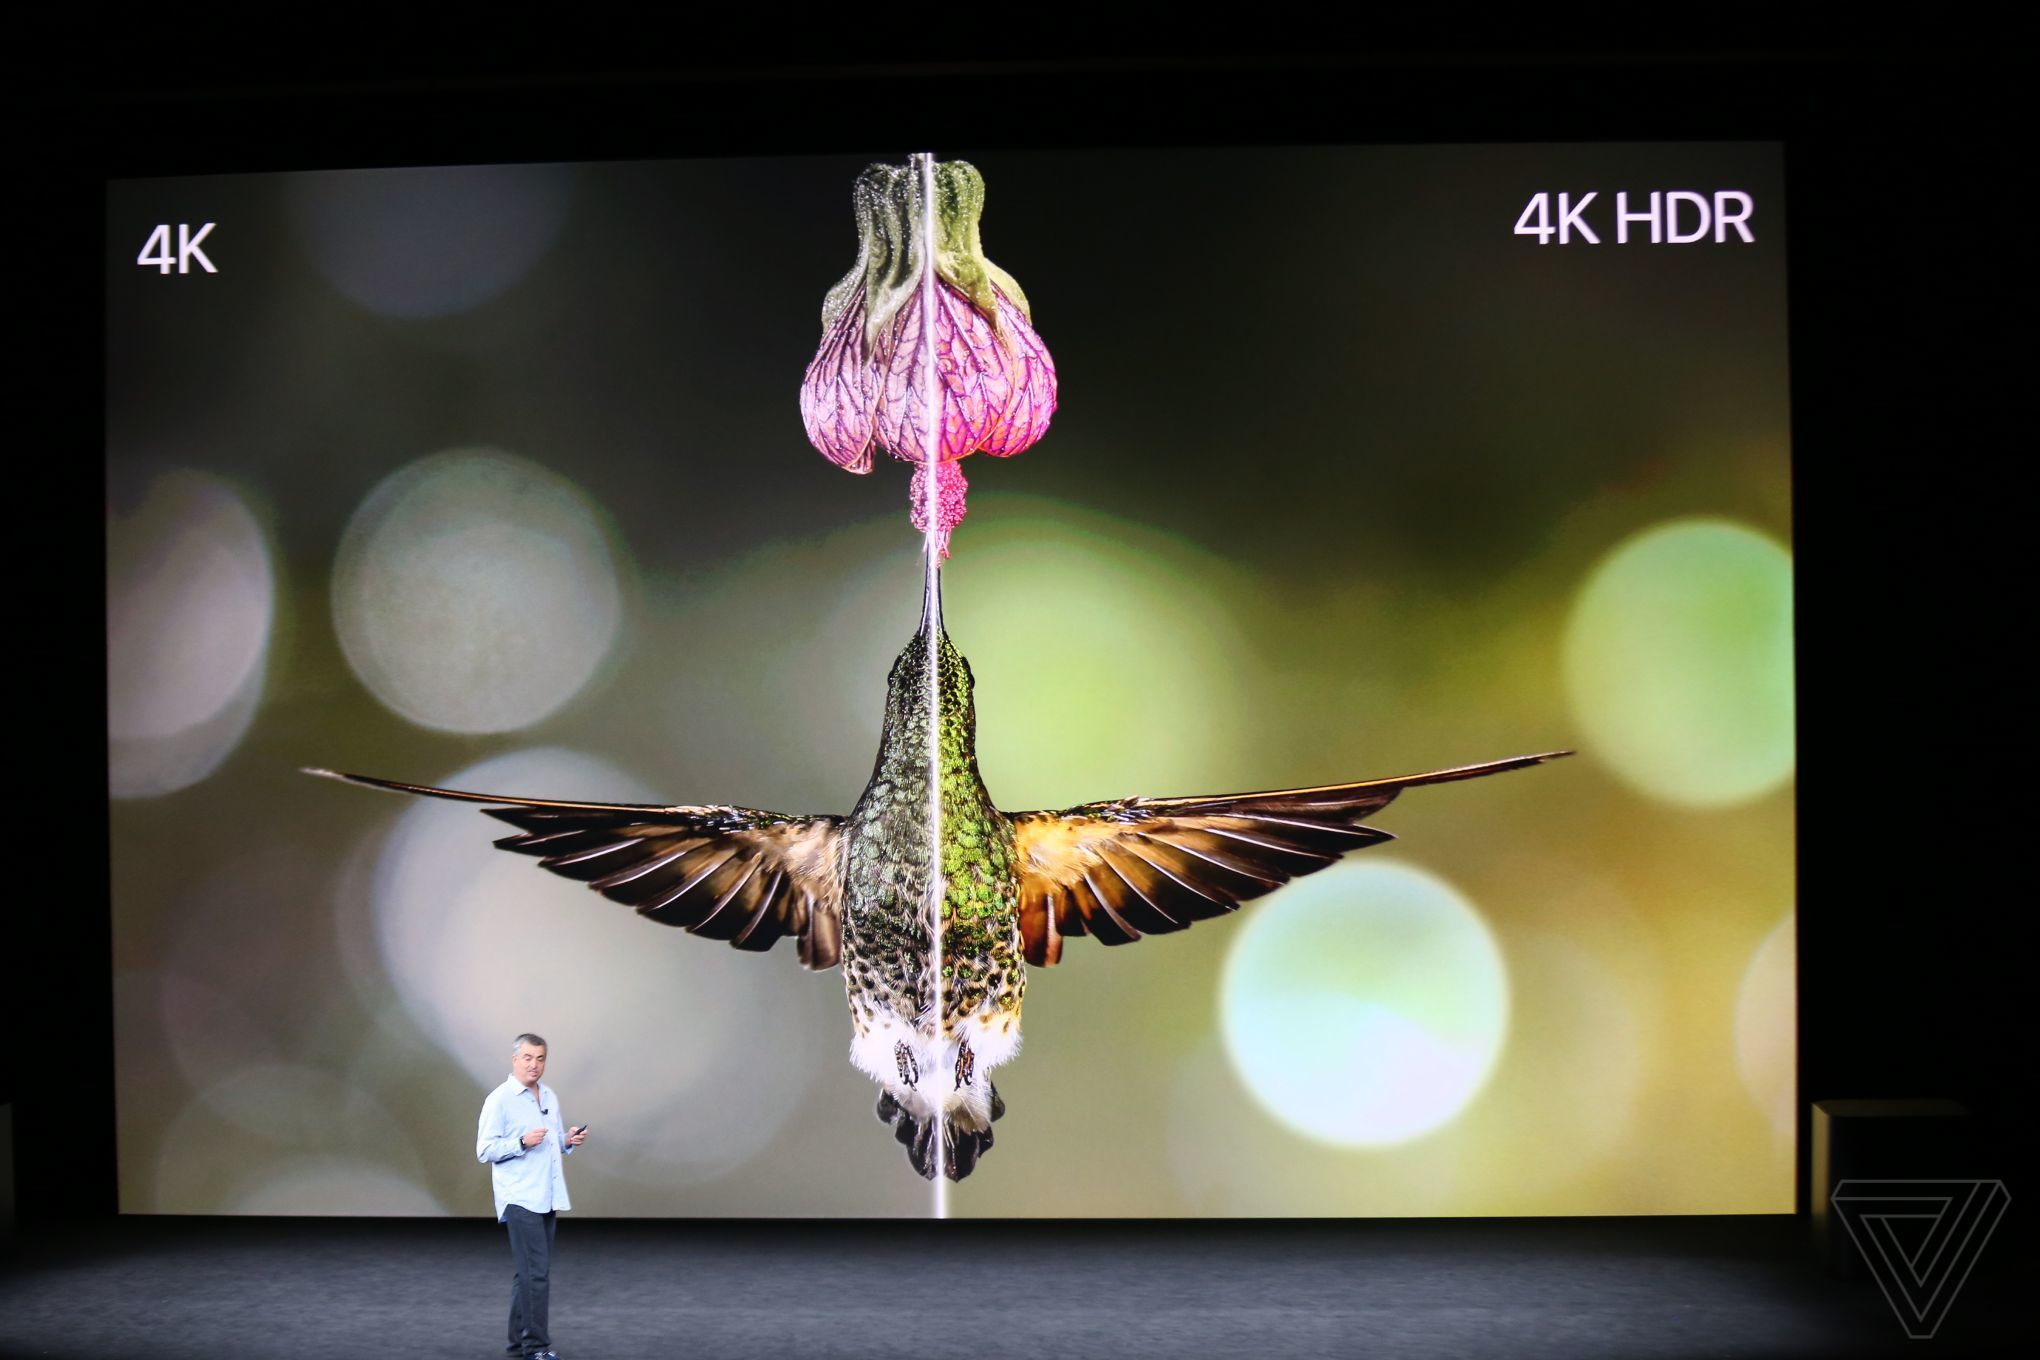 Comparing 4K to HDR image quality on new Apple TV.